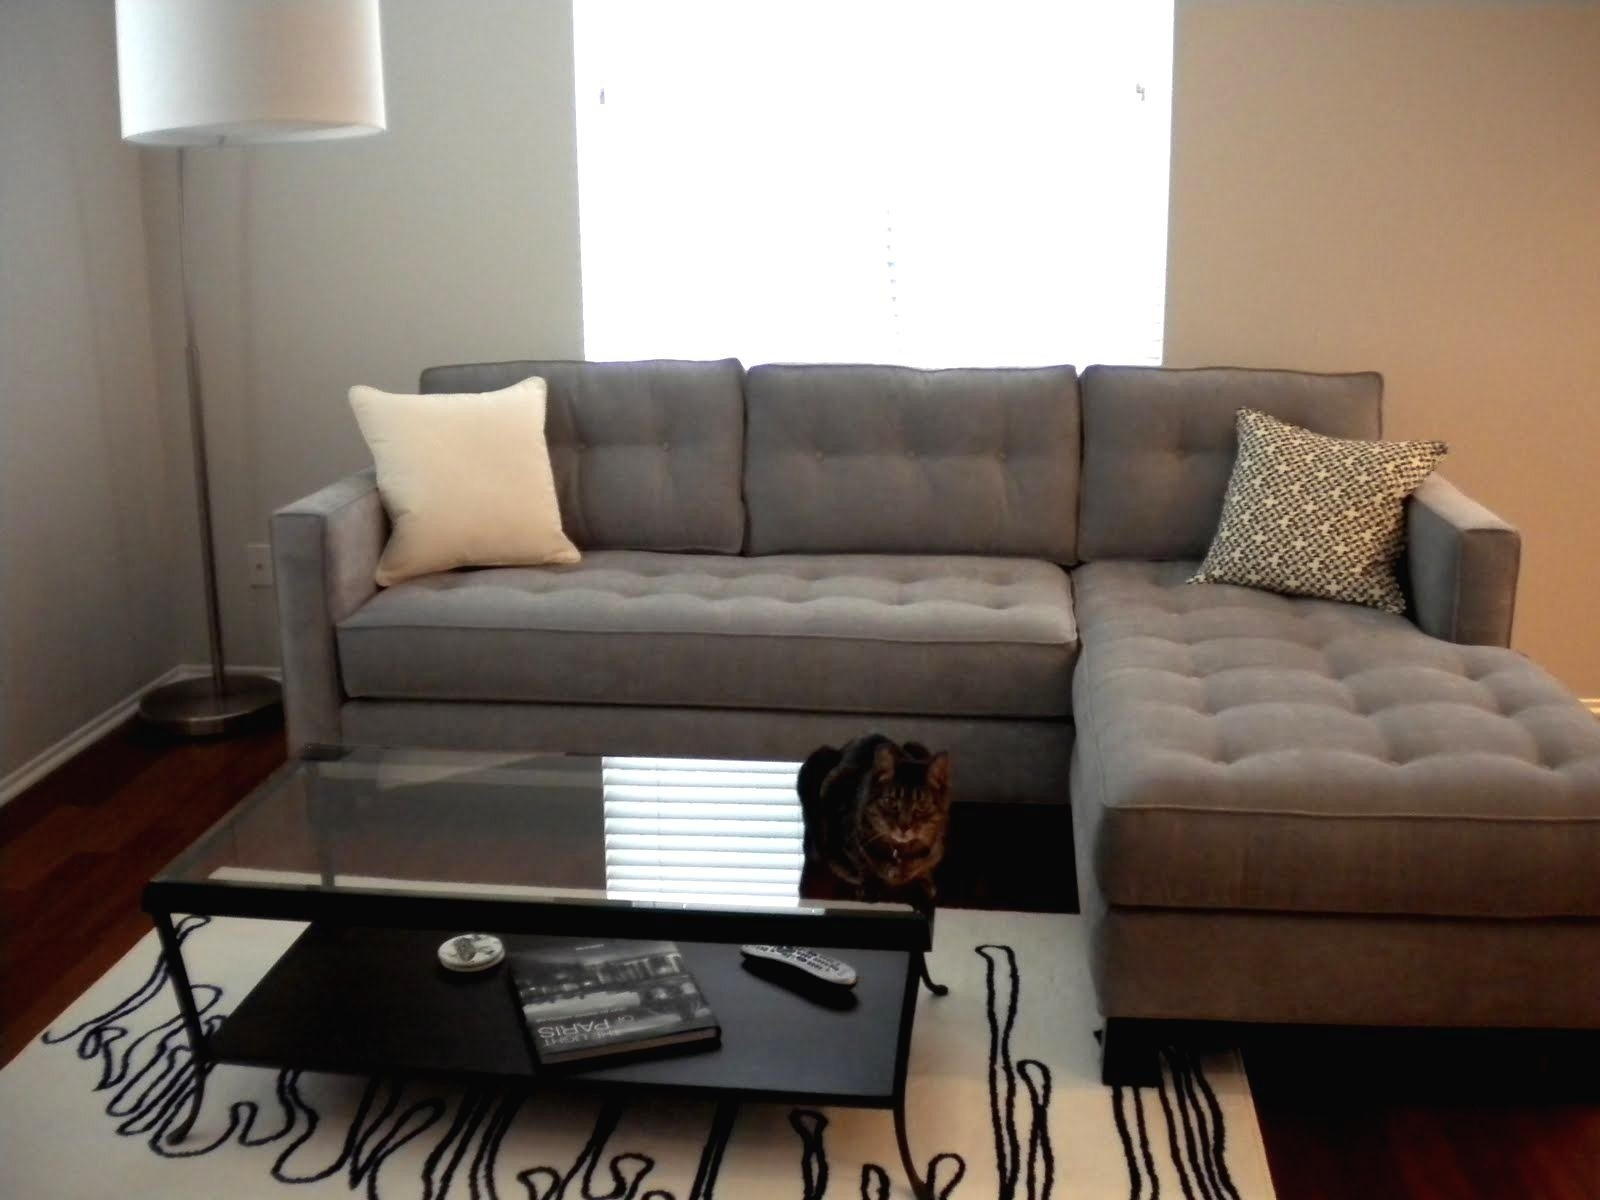 Furniture: Wayfair Sofas | Kmart Furniture Sale | Cheap Sectional Pertaining To Kmart Sectional Sofas (View 5 of 10)